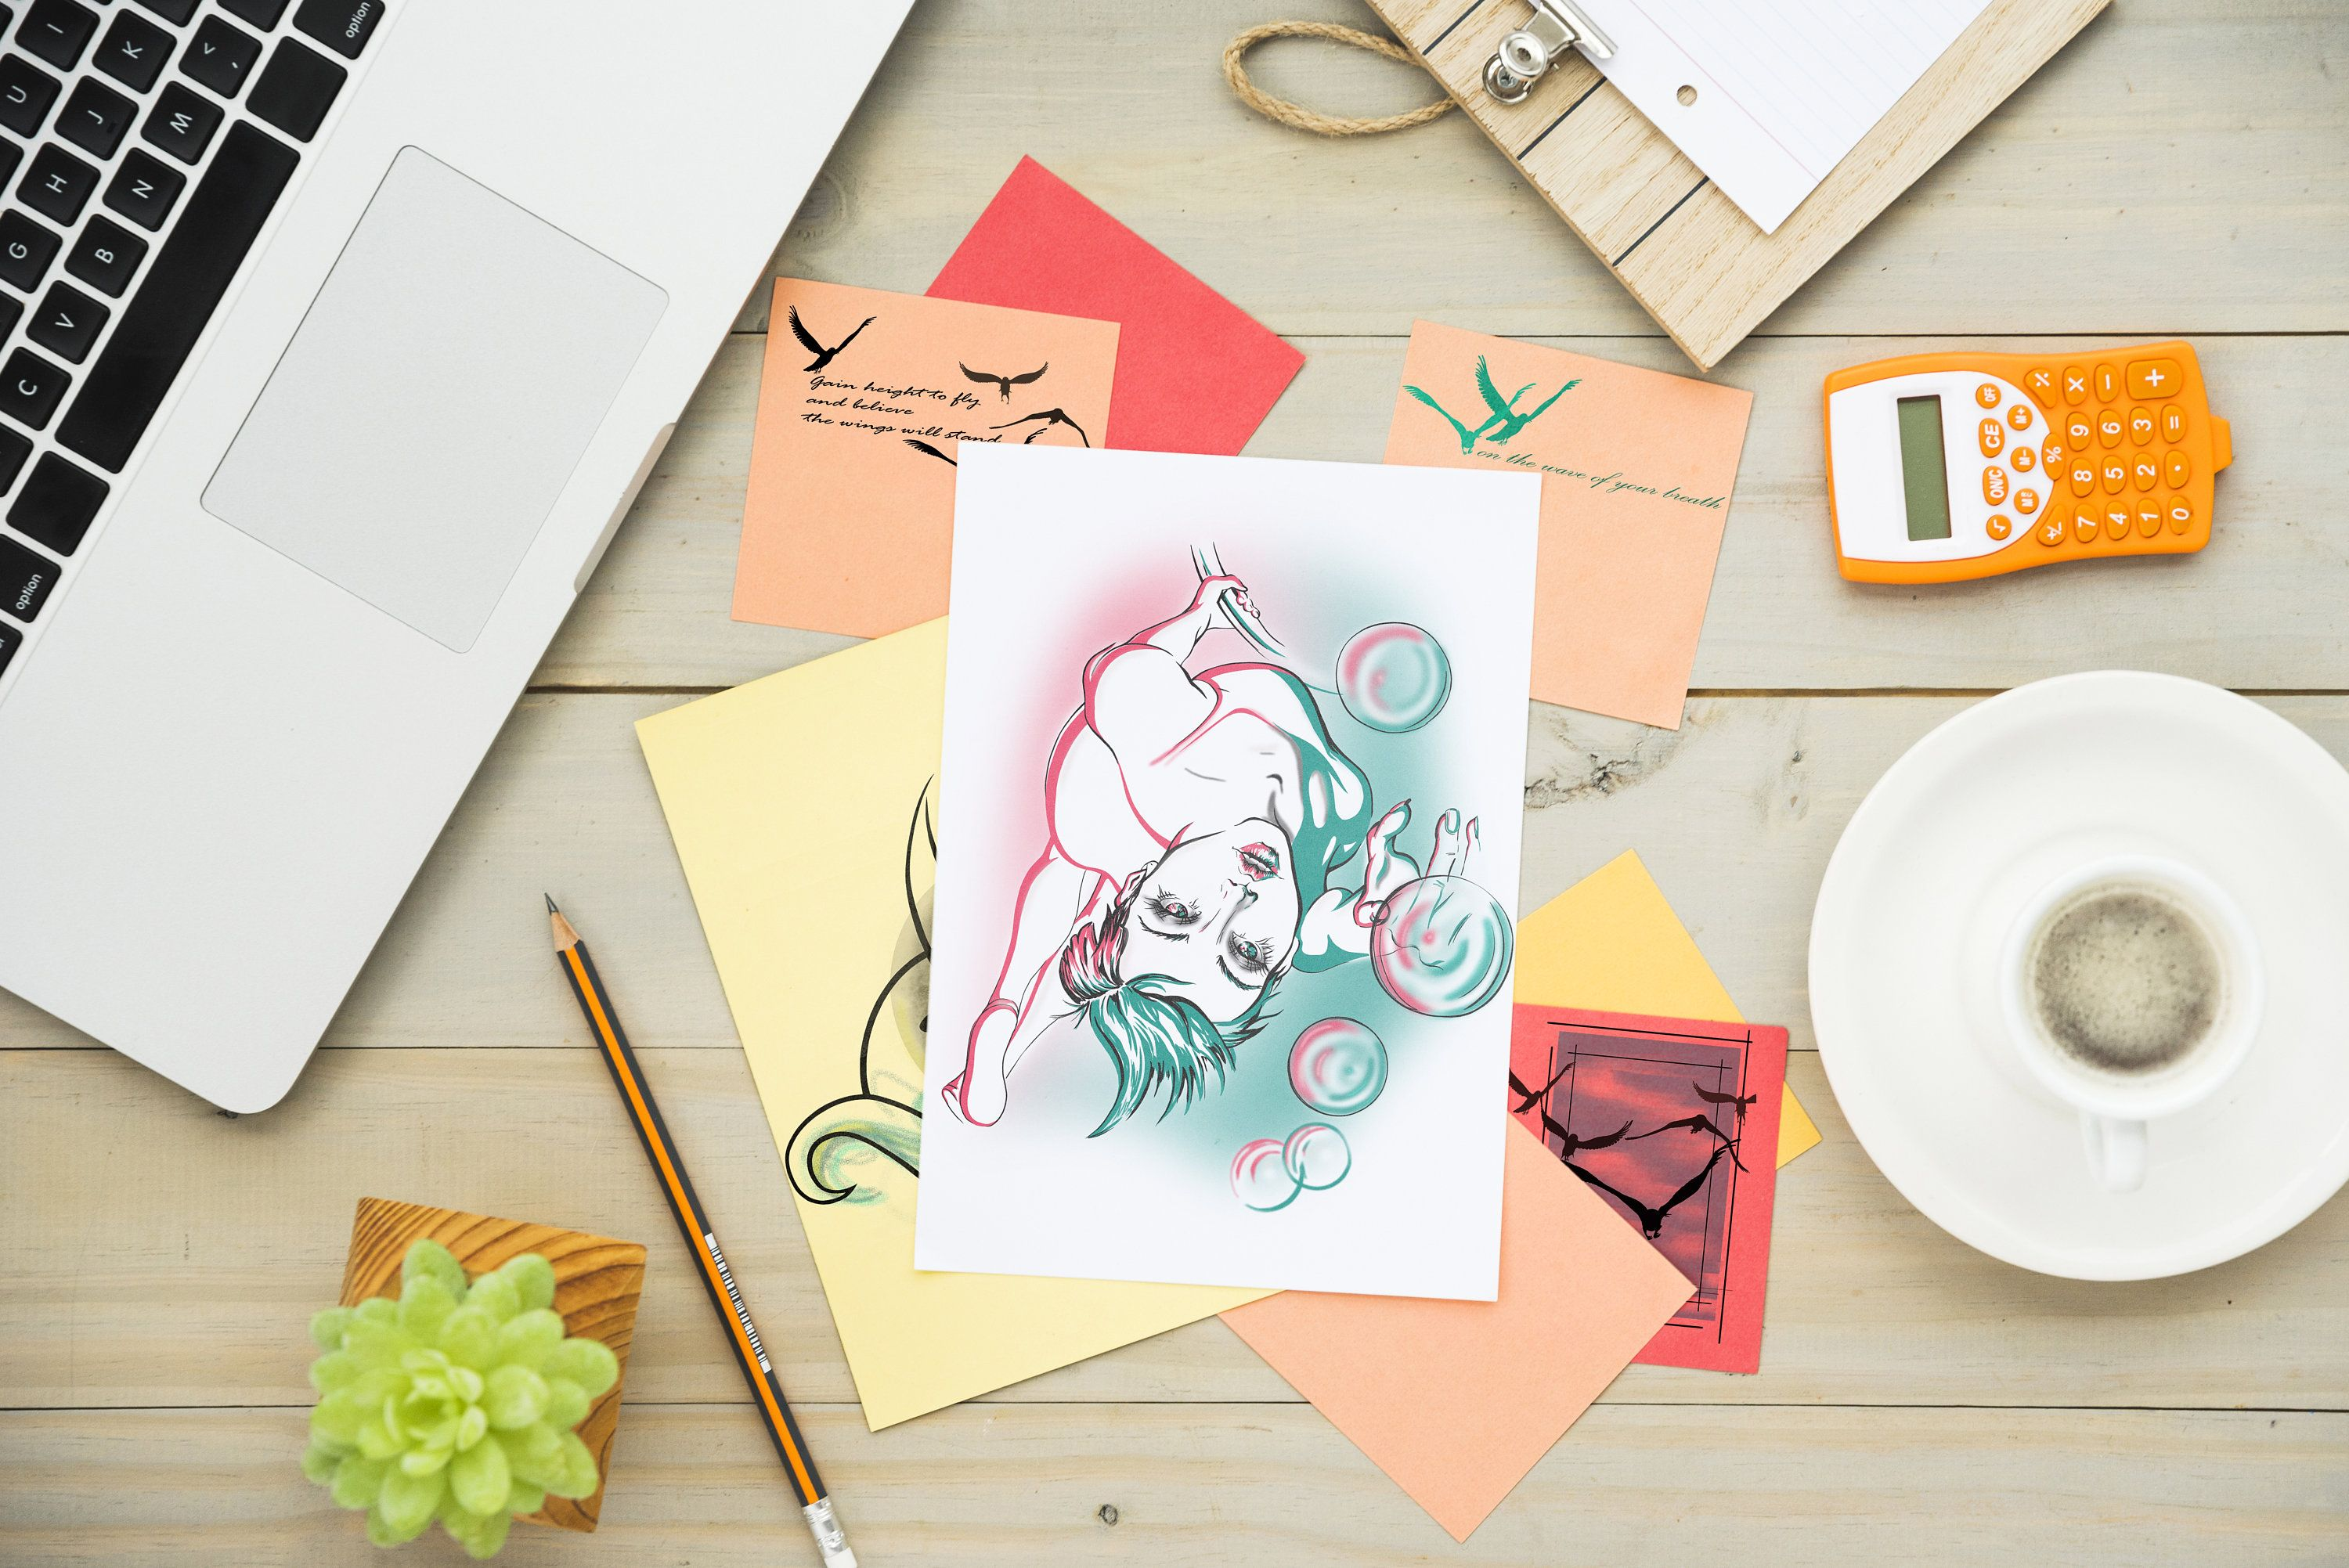 Gymnastic Woman Acrobat Pointing Bubbles Instantly Downloadable Digital Handmade Green Pink Graphic Drawing Home Salon Art Print Colorful Drawings Drawing Prints Salon Art